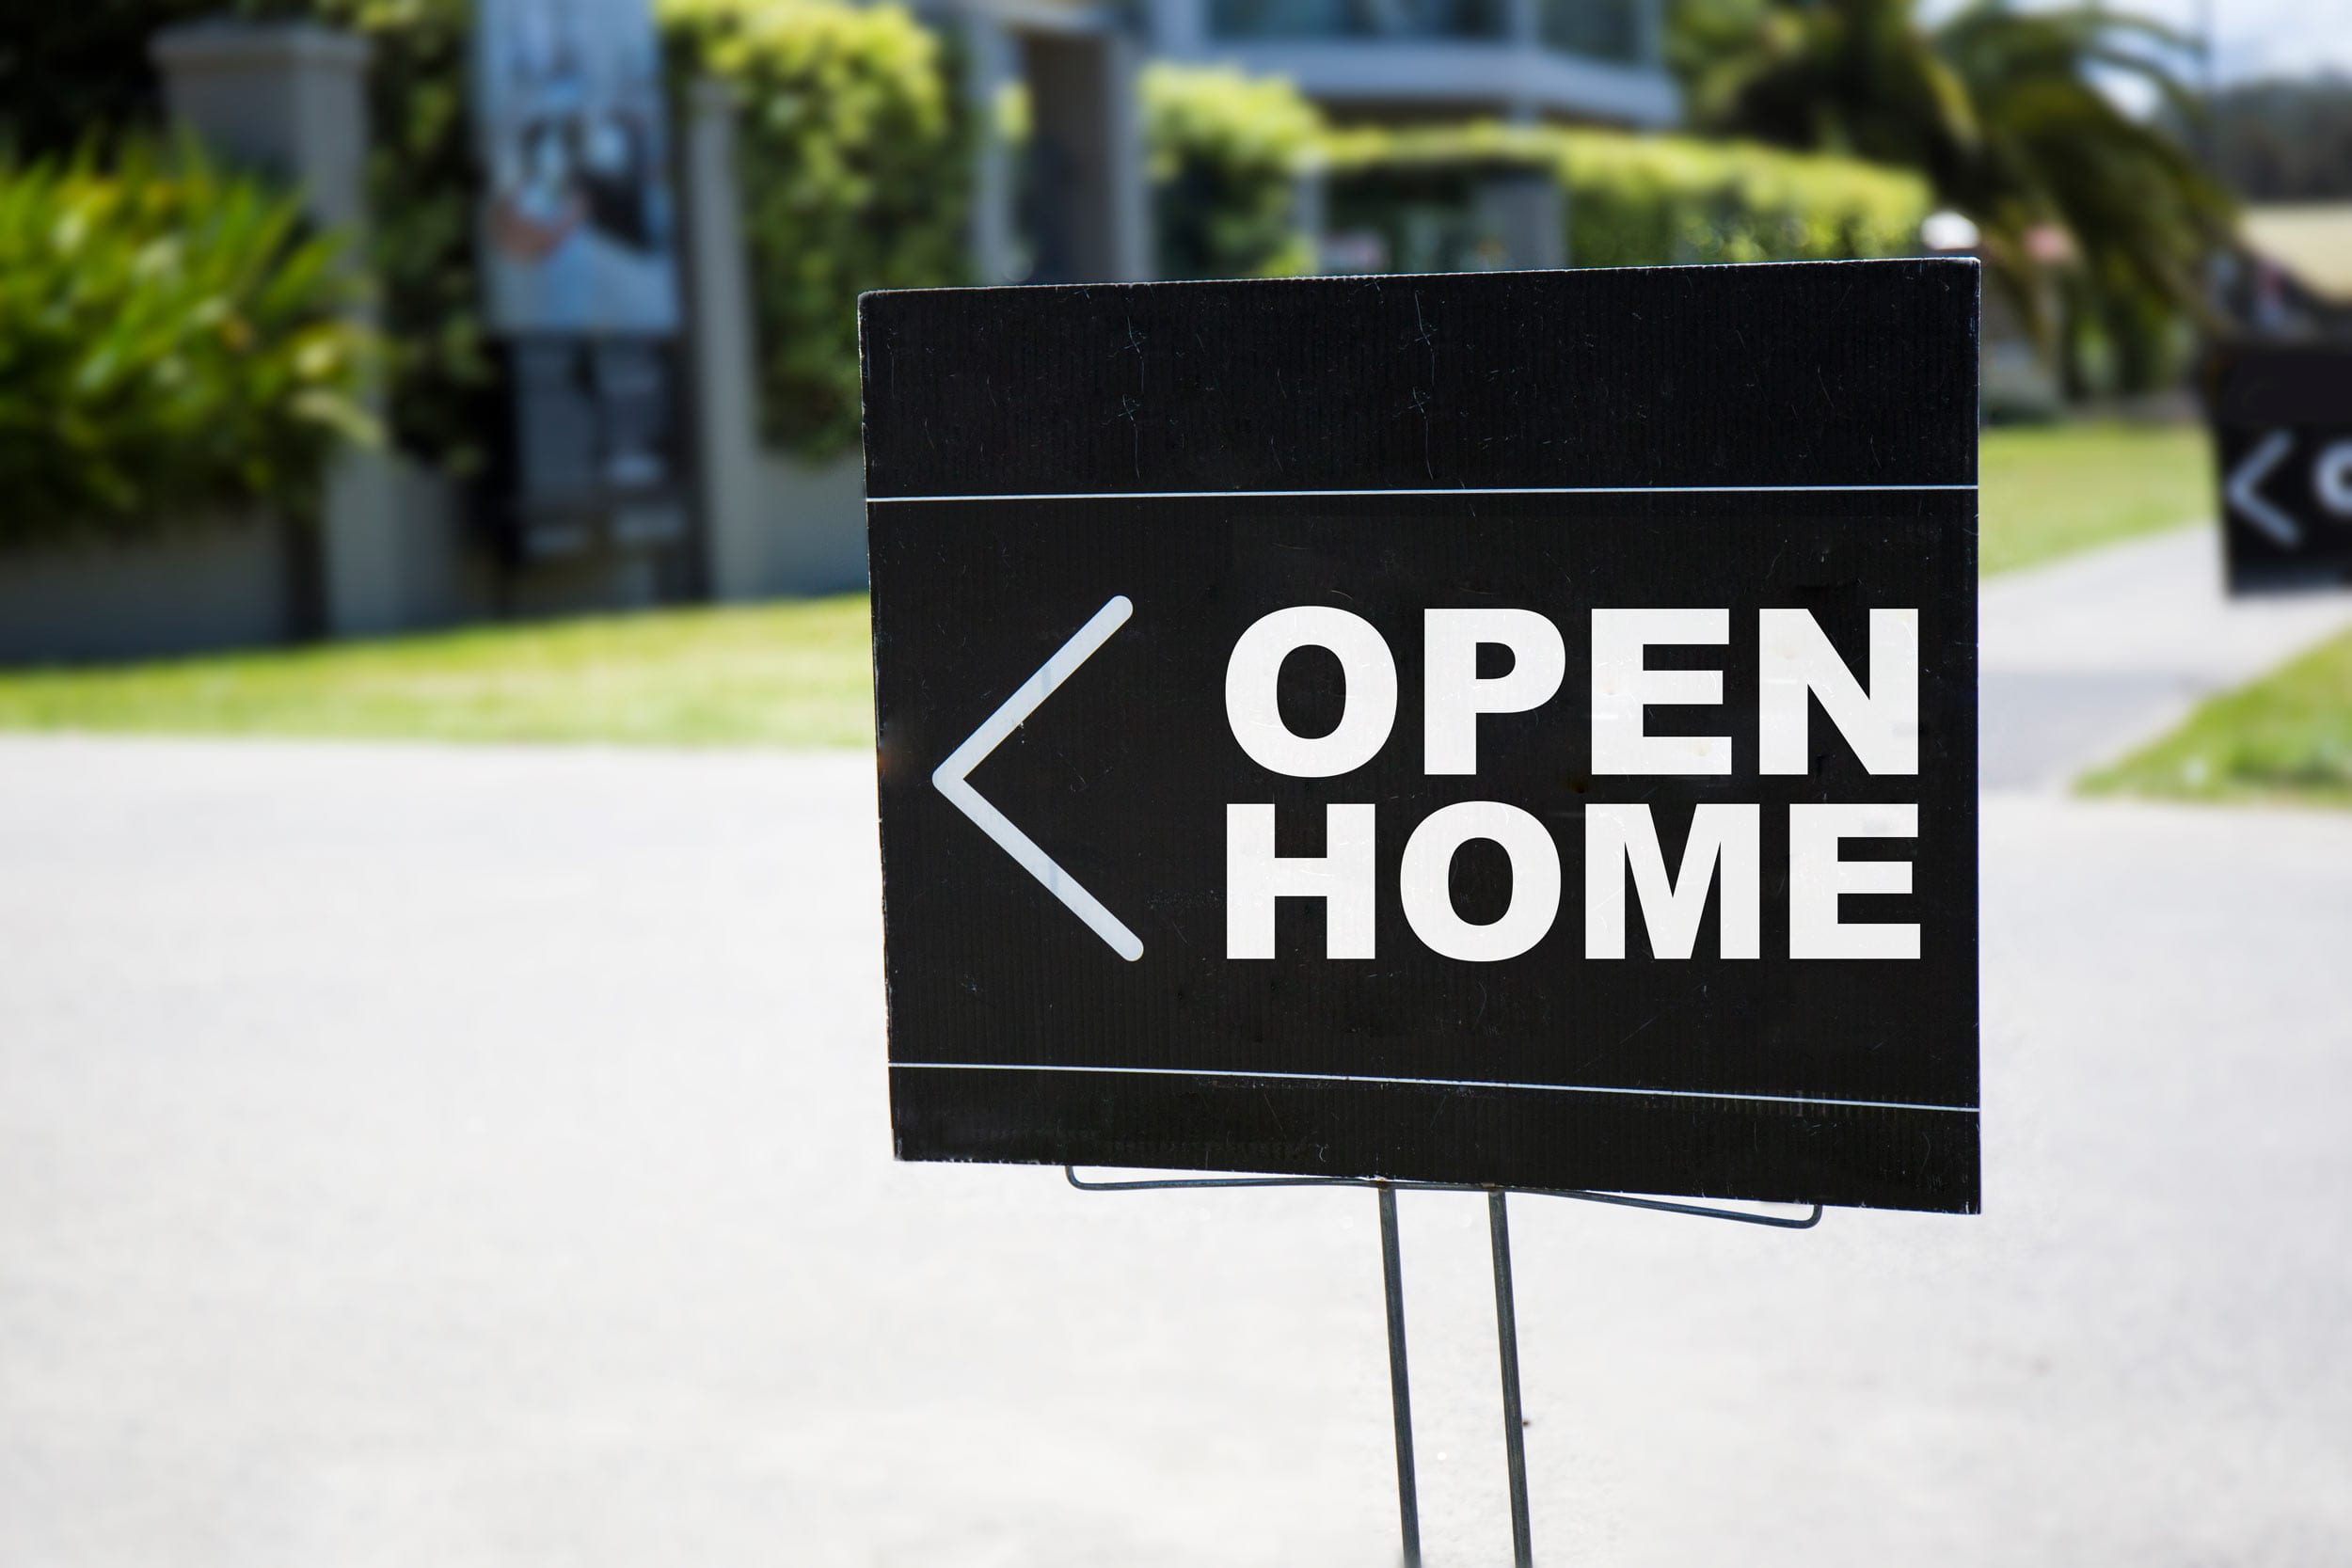 What to do at an Open Home